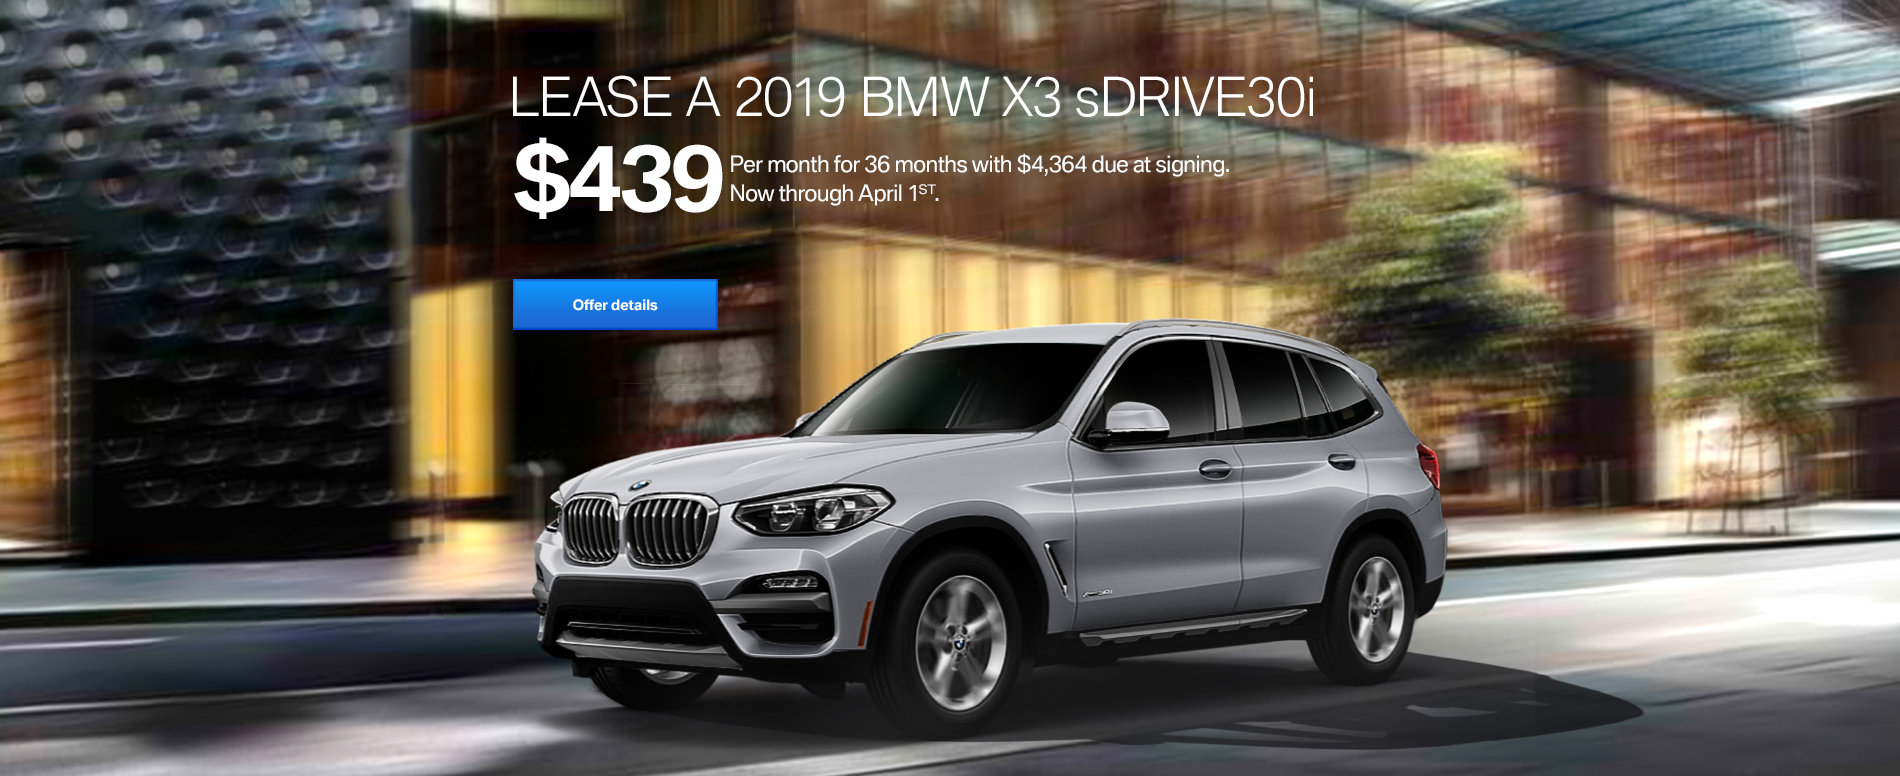 LEASE A 2019 BMW X3 sDRIVE30i FOR $439/MONTH FOR 36 MONTHS WITH